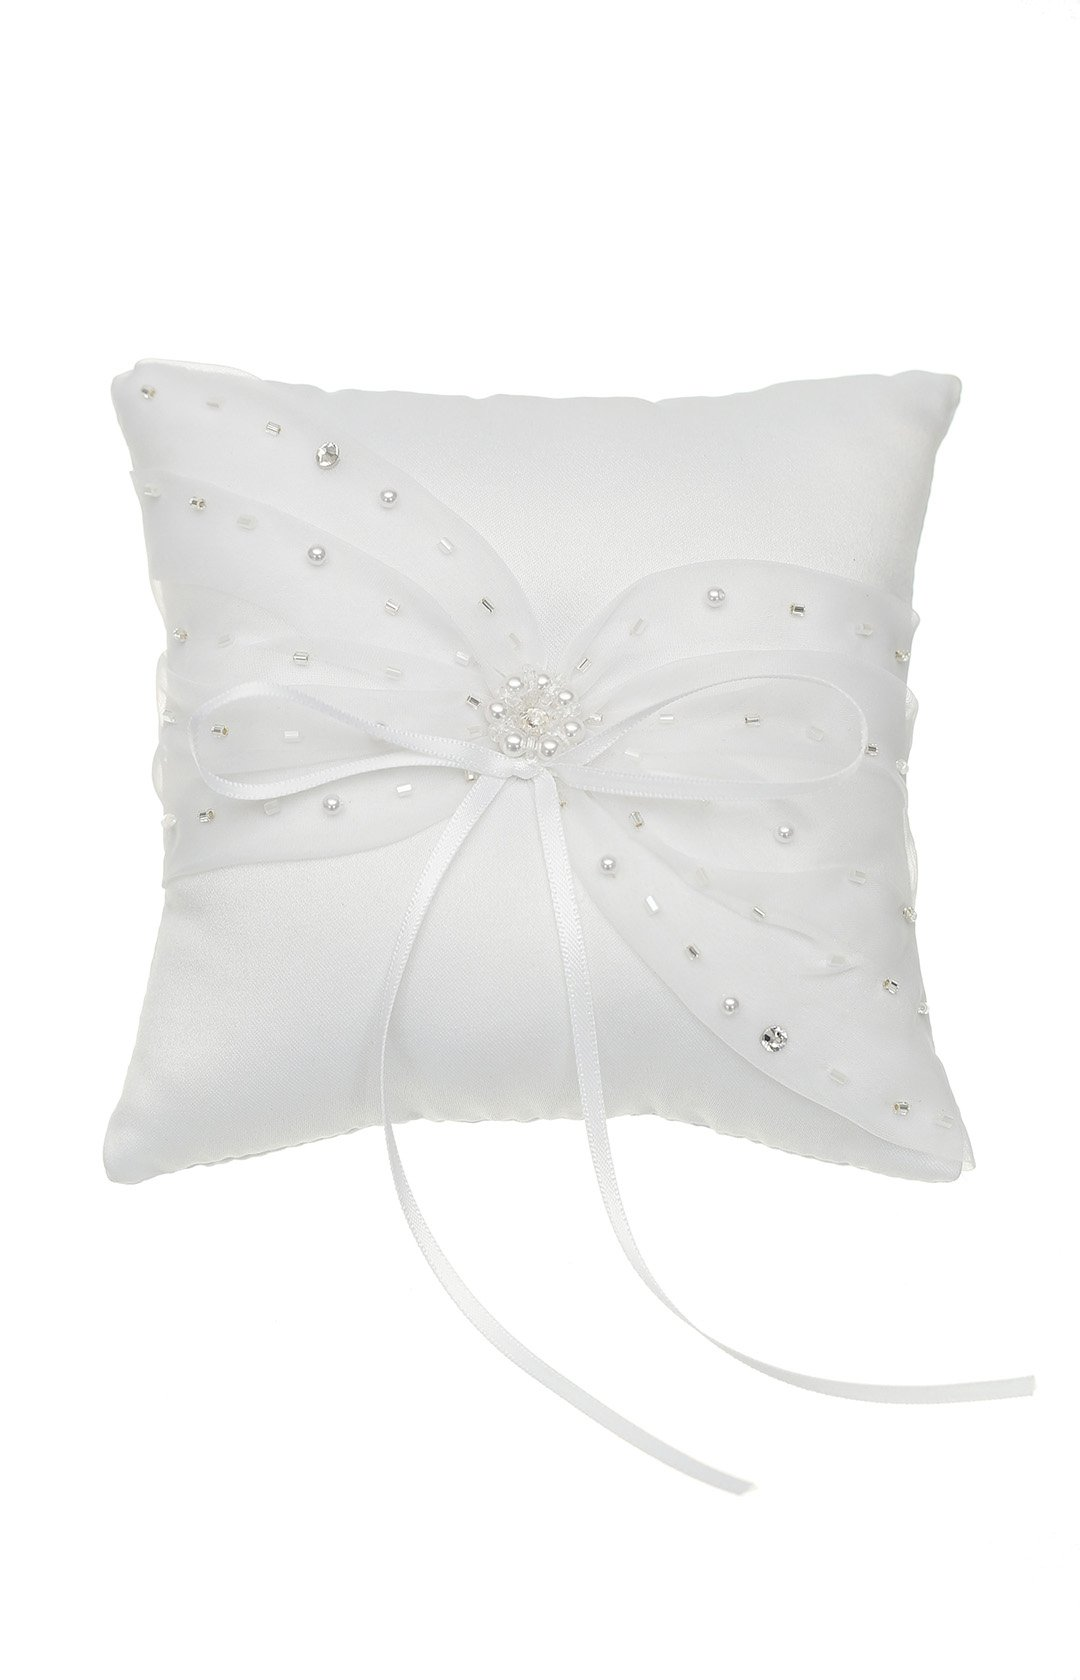 SAMKY Venus Jewelry Crystal Beads Lace Bow Wedding Ring Bearer Pillow 5 Inch x 5 Inch - White RP011W